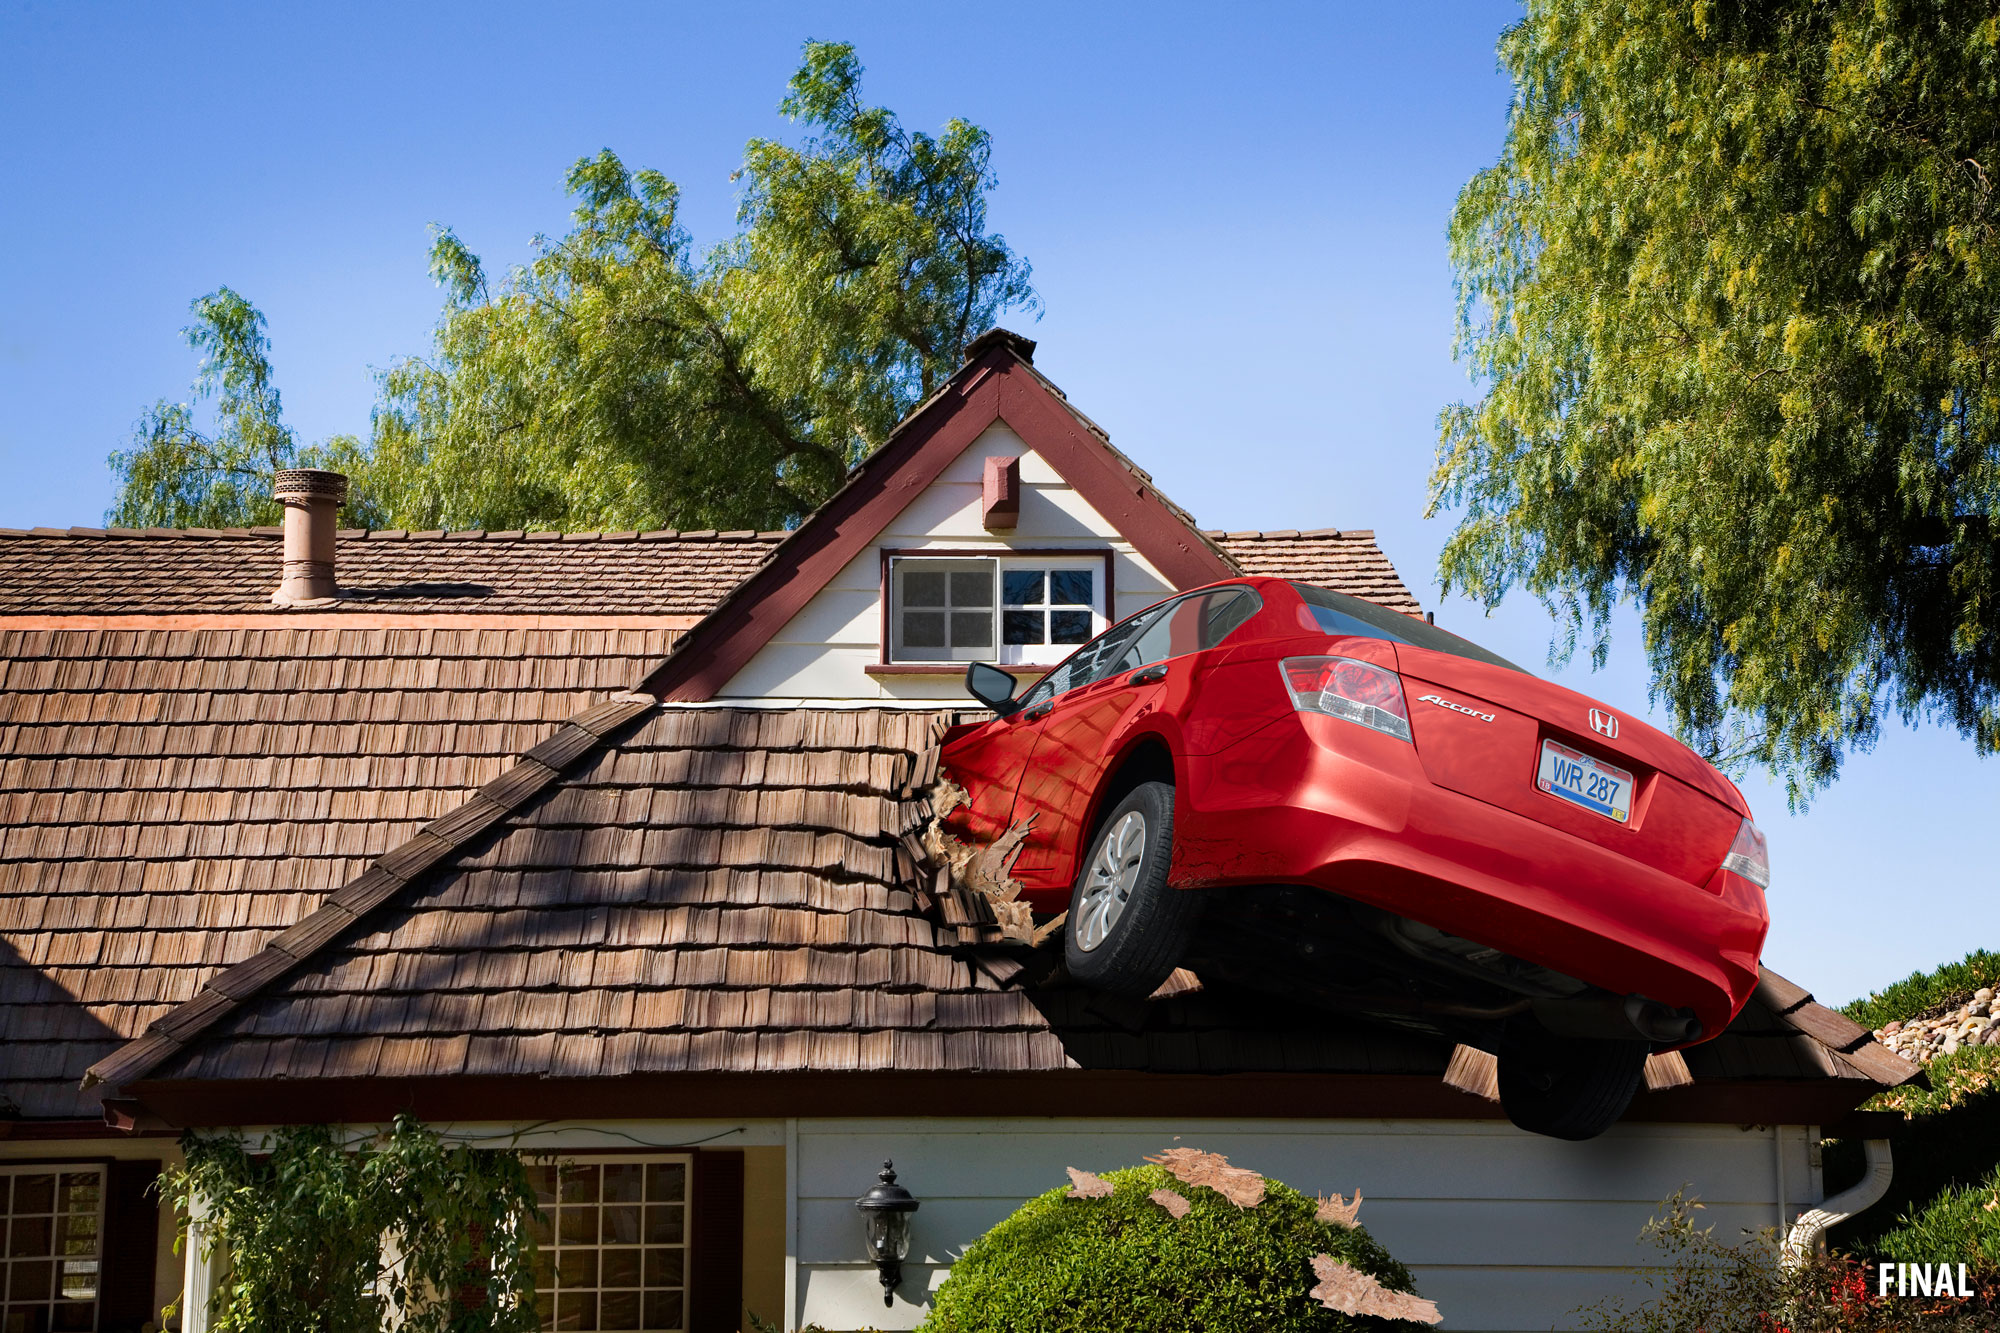 professional composite imagery of car crashing into roof of house